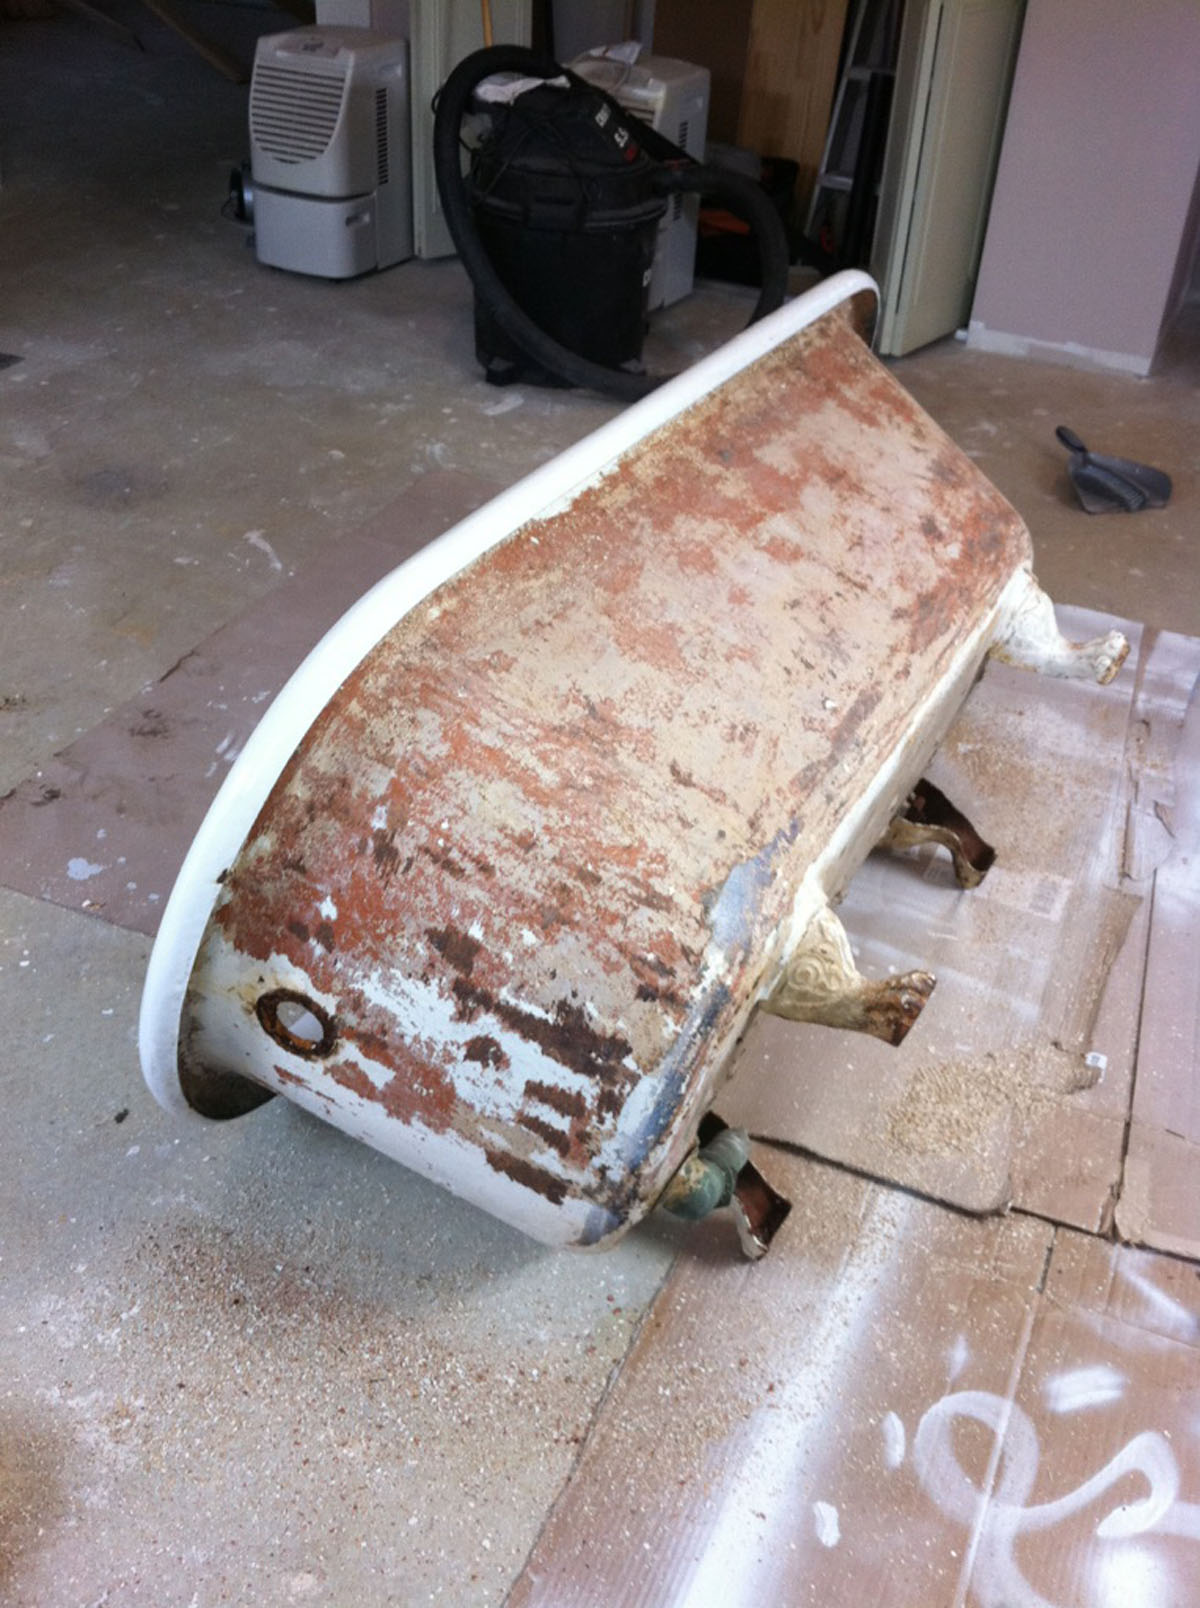 Clawfoot cast iron bathtub before refinishing - reglazing